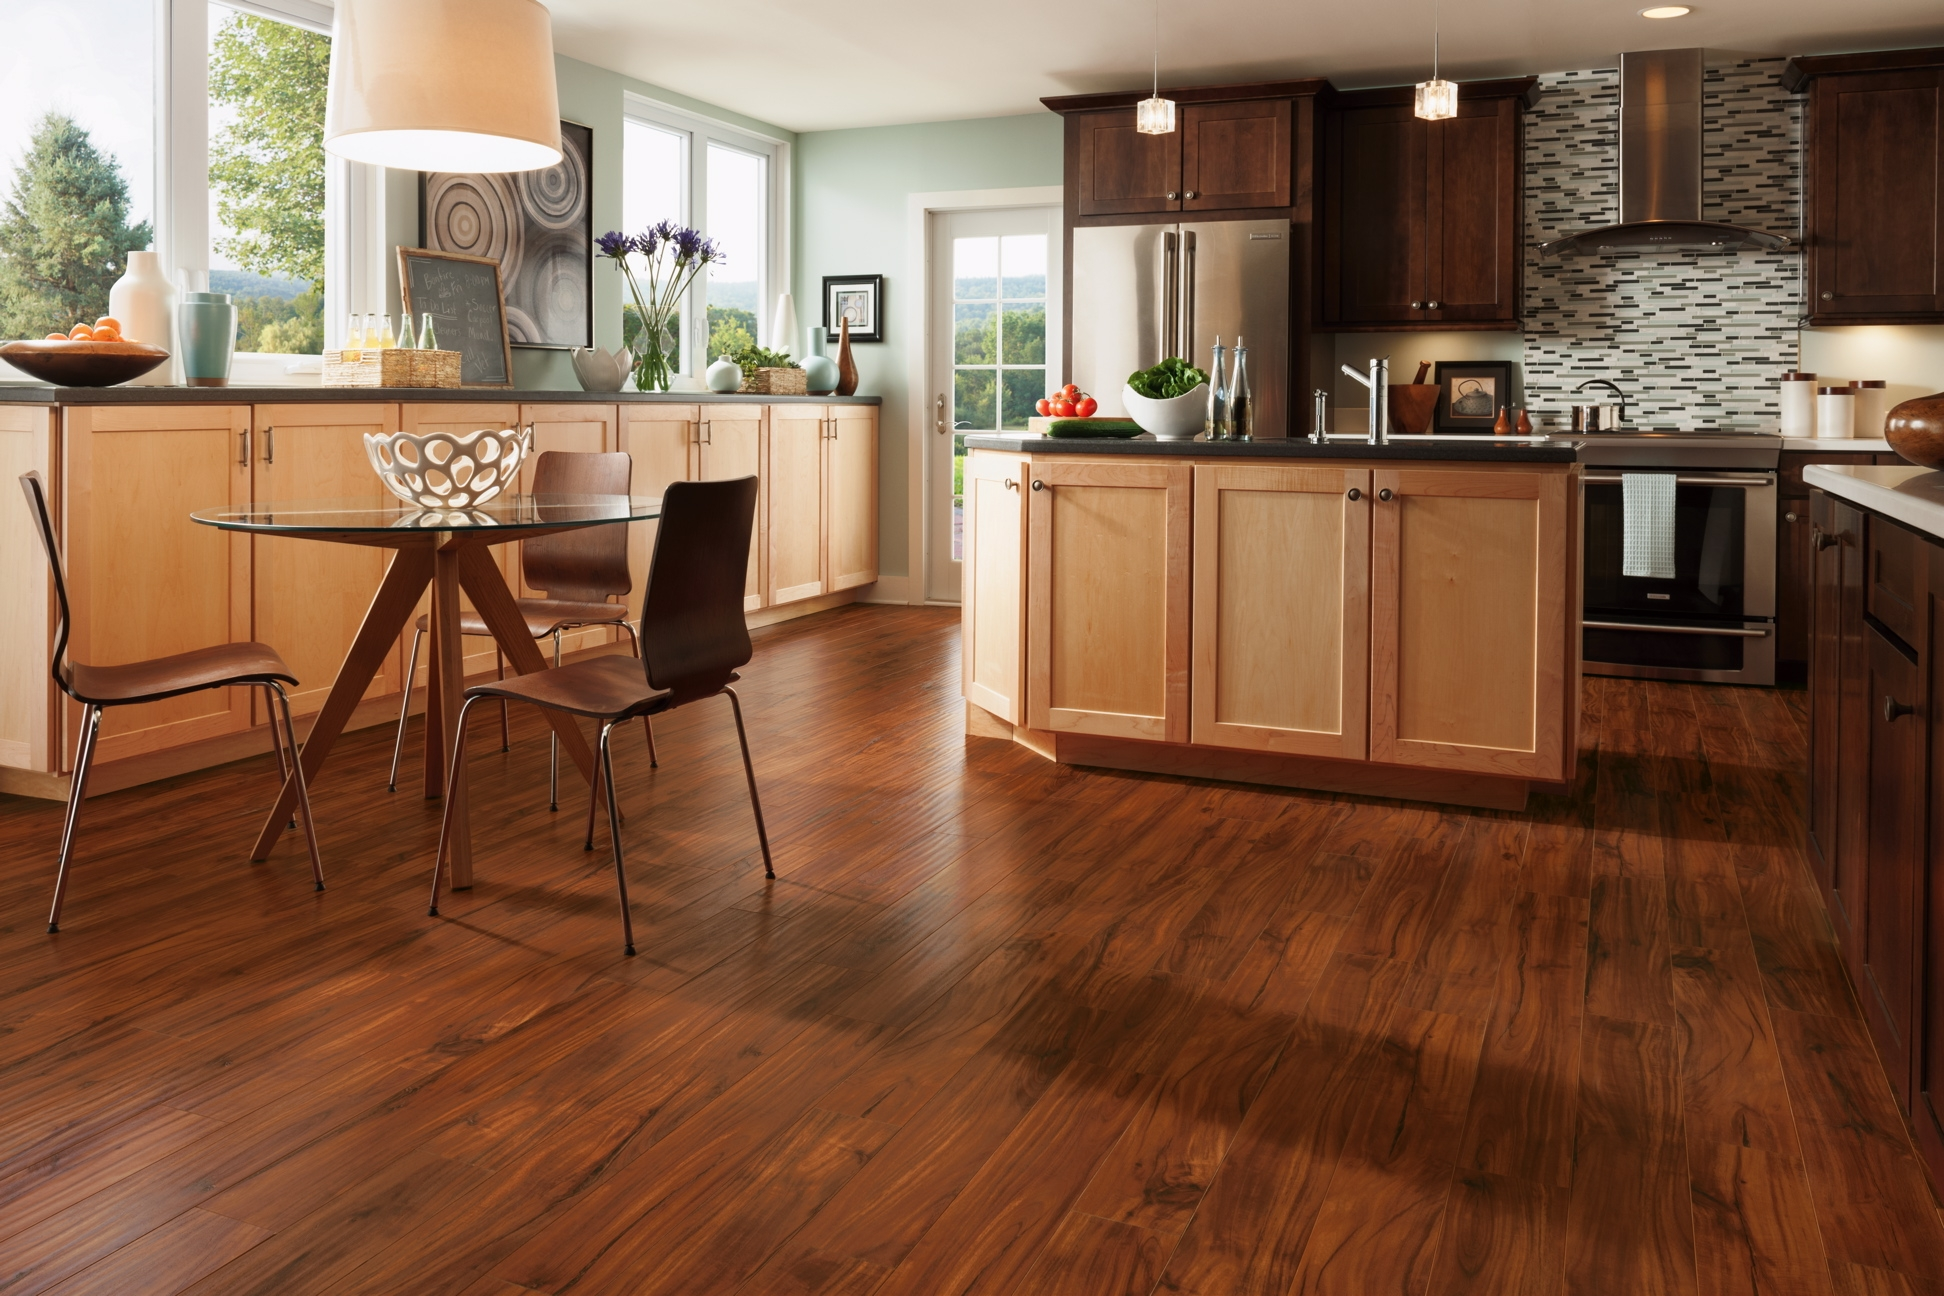 Permalink to Make Wood Floors Shine Naturally